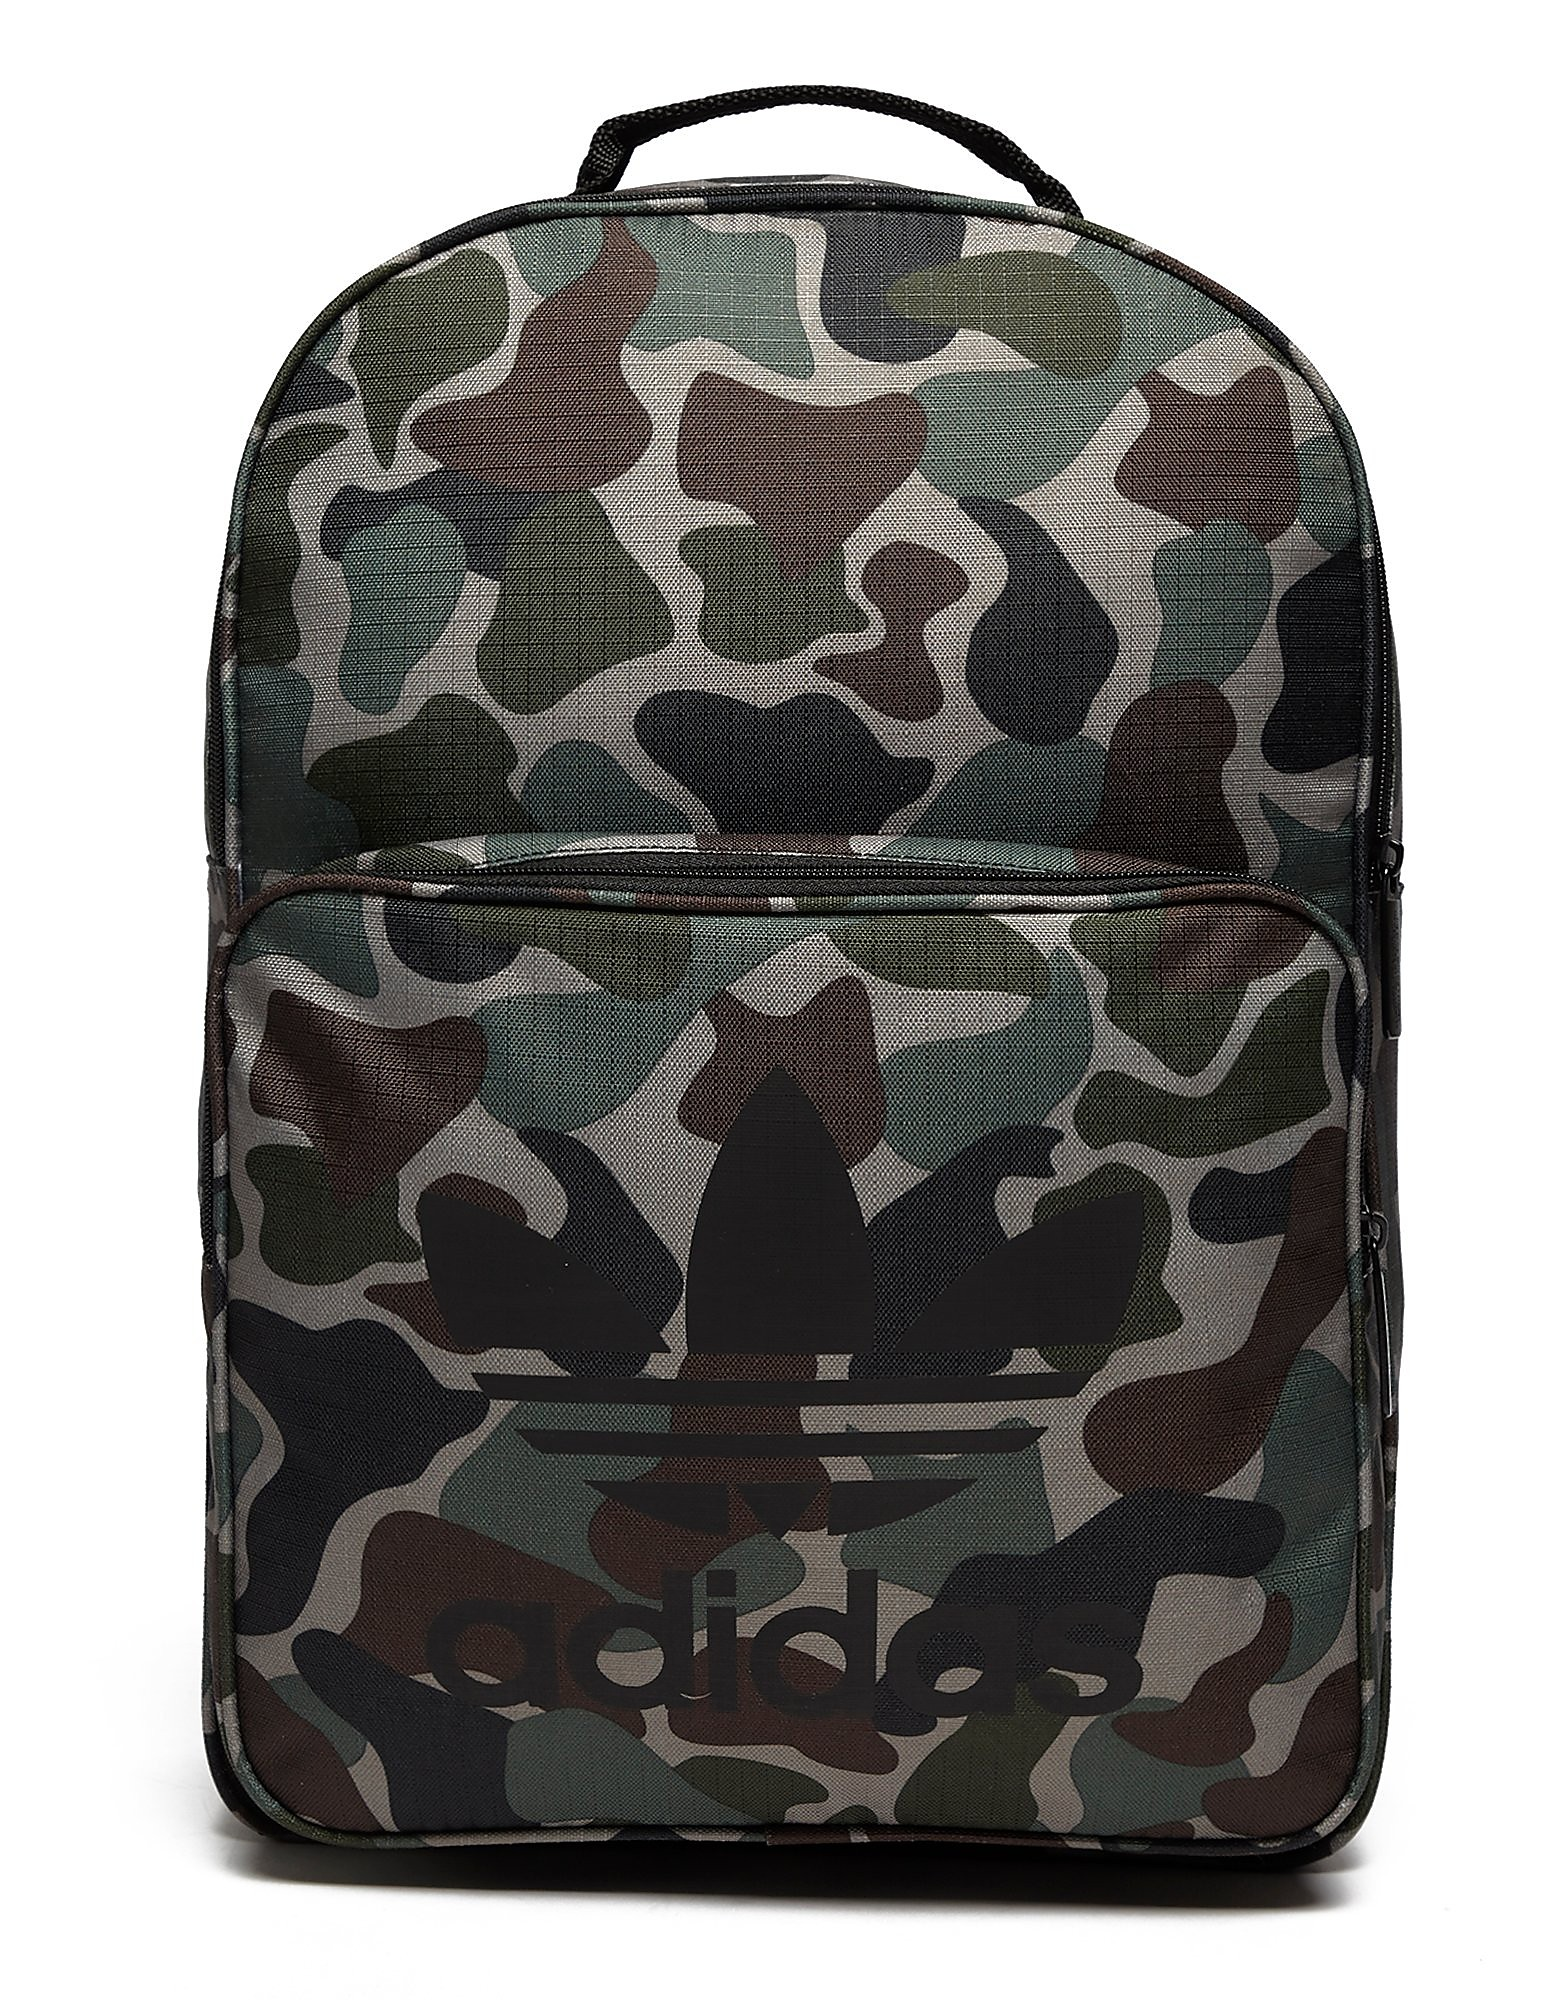 adidas Originals Sac à dos Clasic Camo